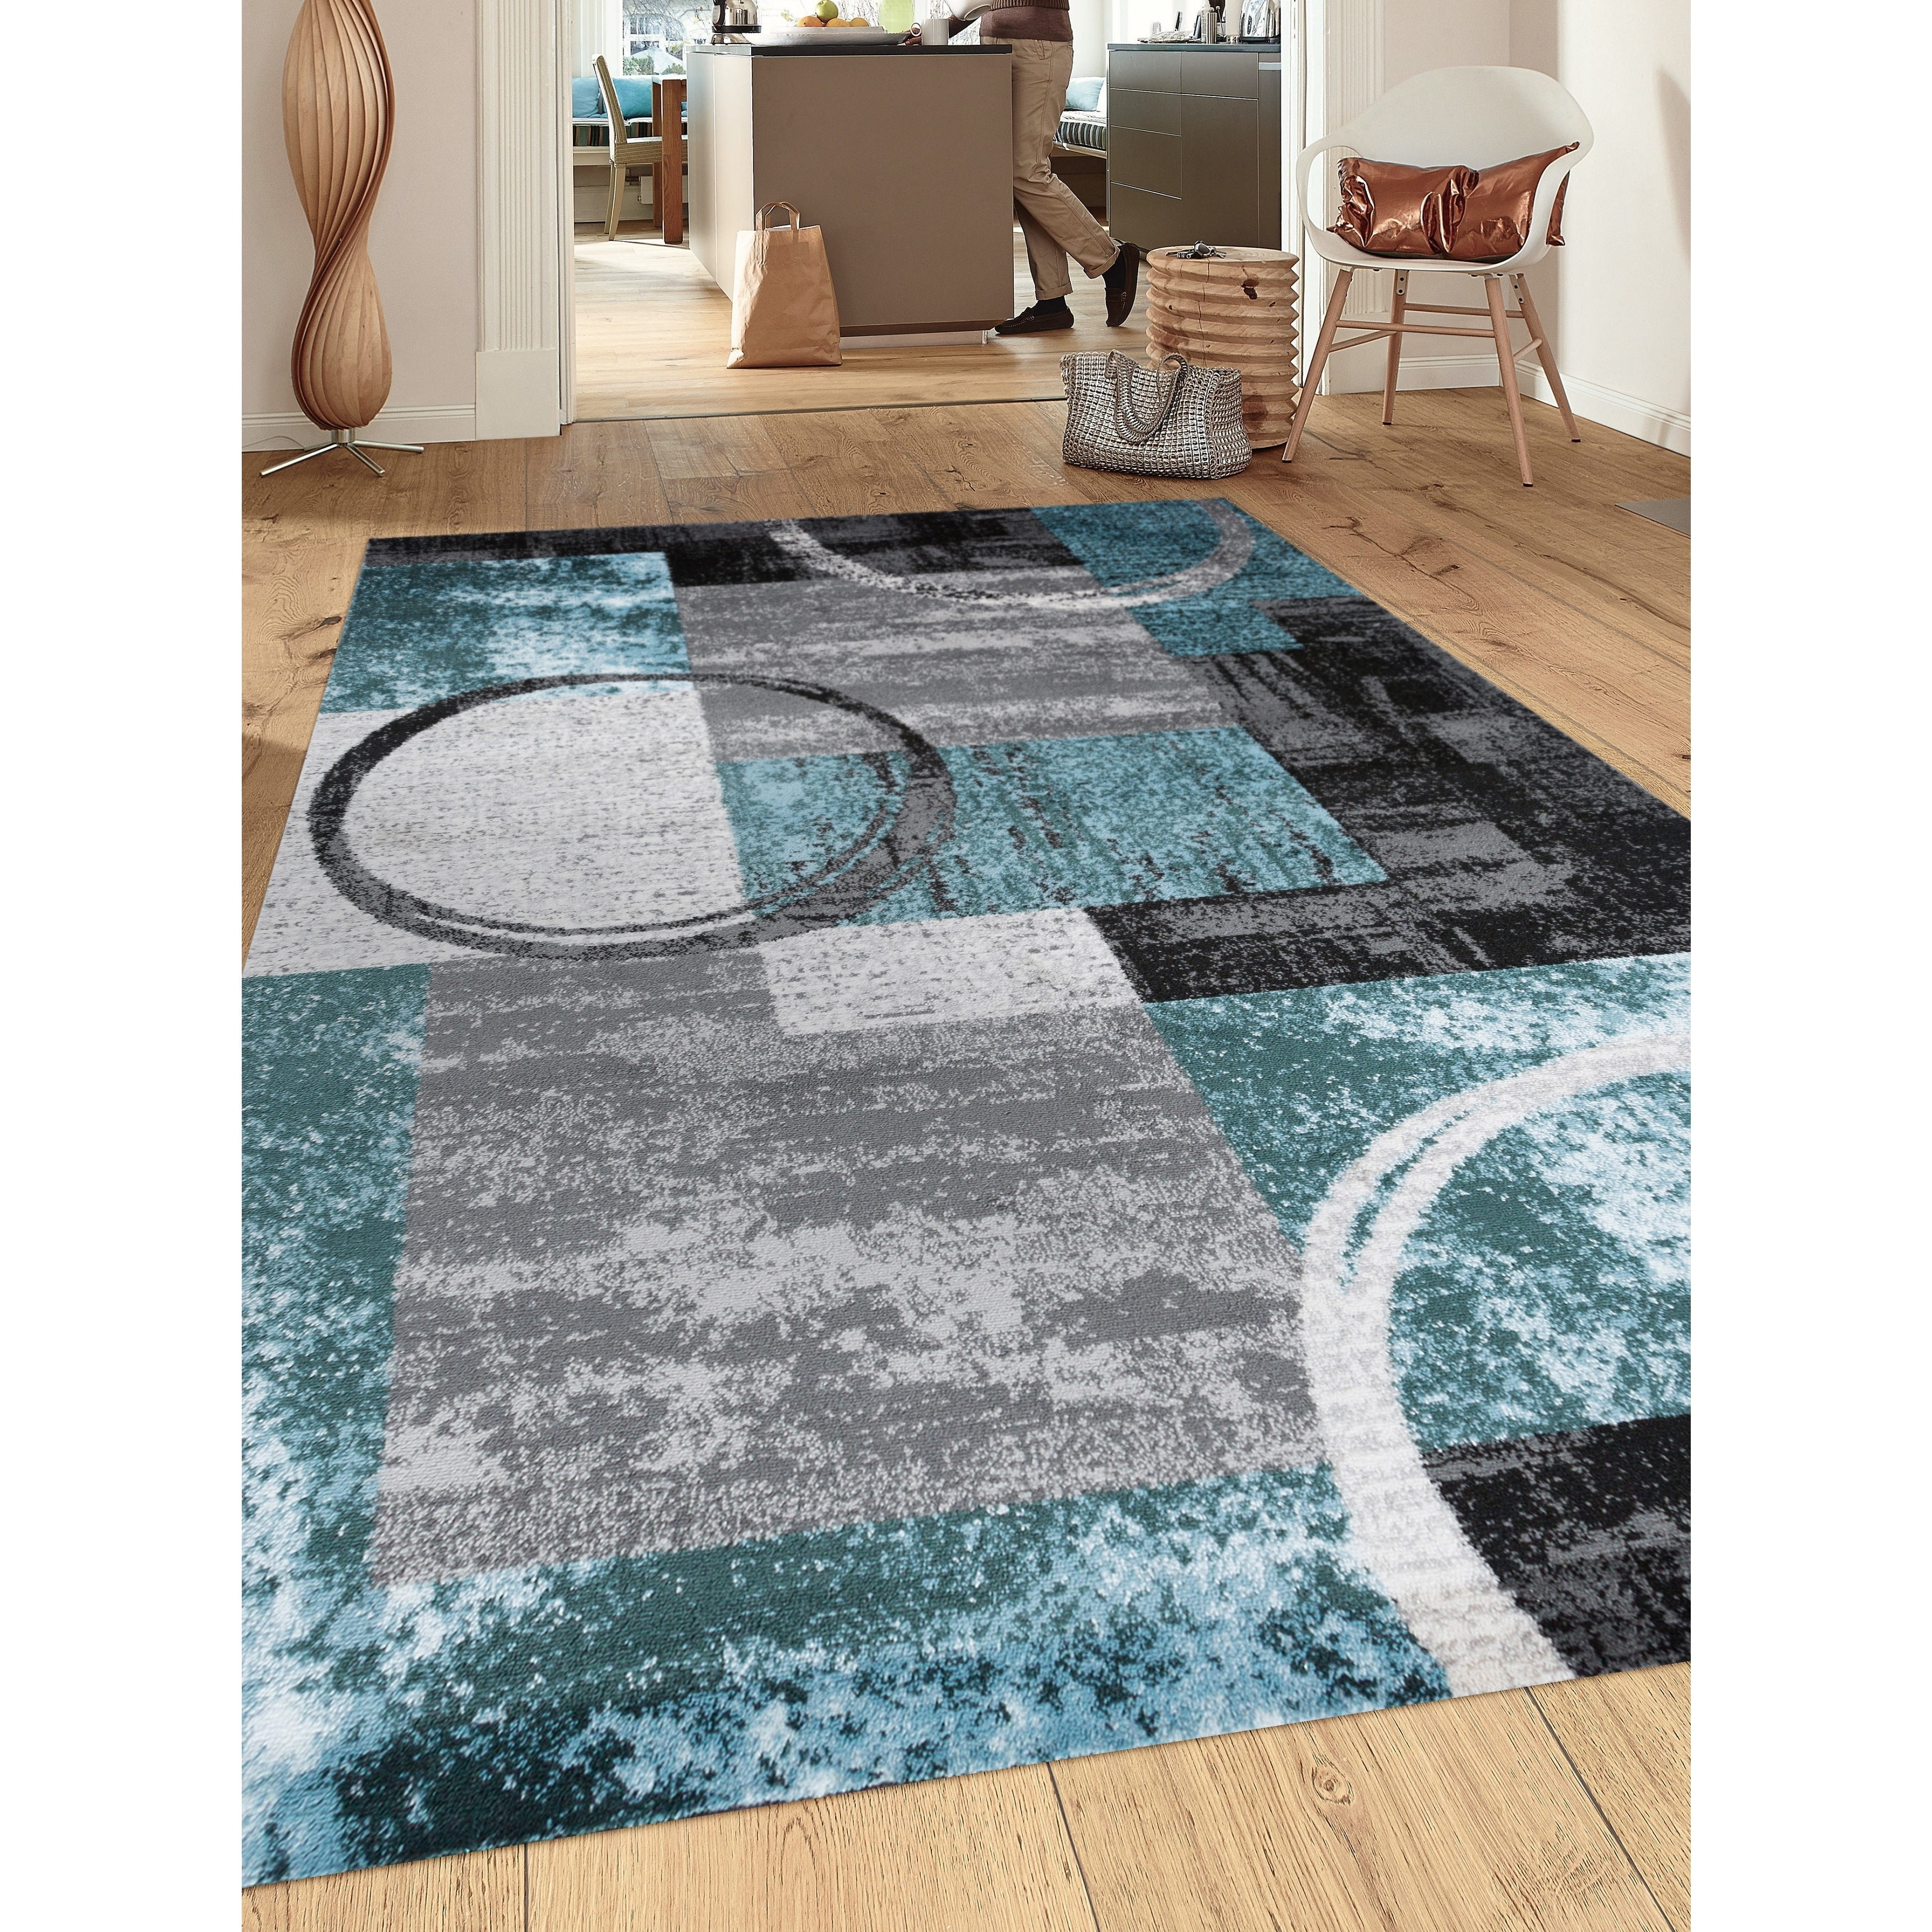 "OSTI Contemporary Abstract Circle Grey/Blue Indoor Area Rug - 7'10"" x 10'2"""